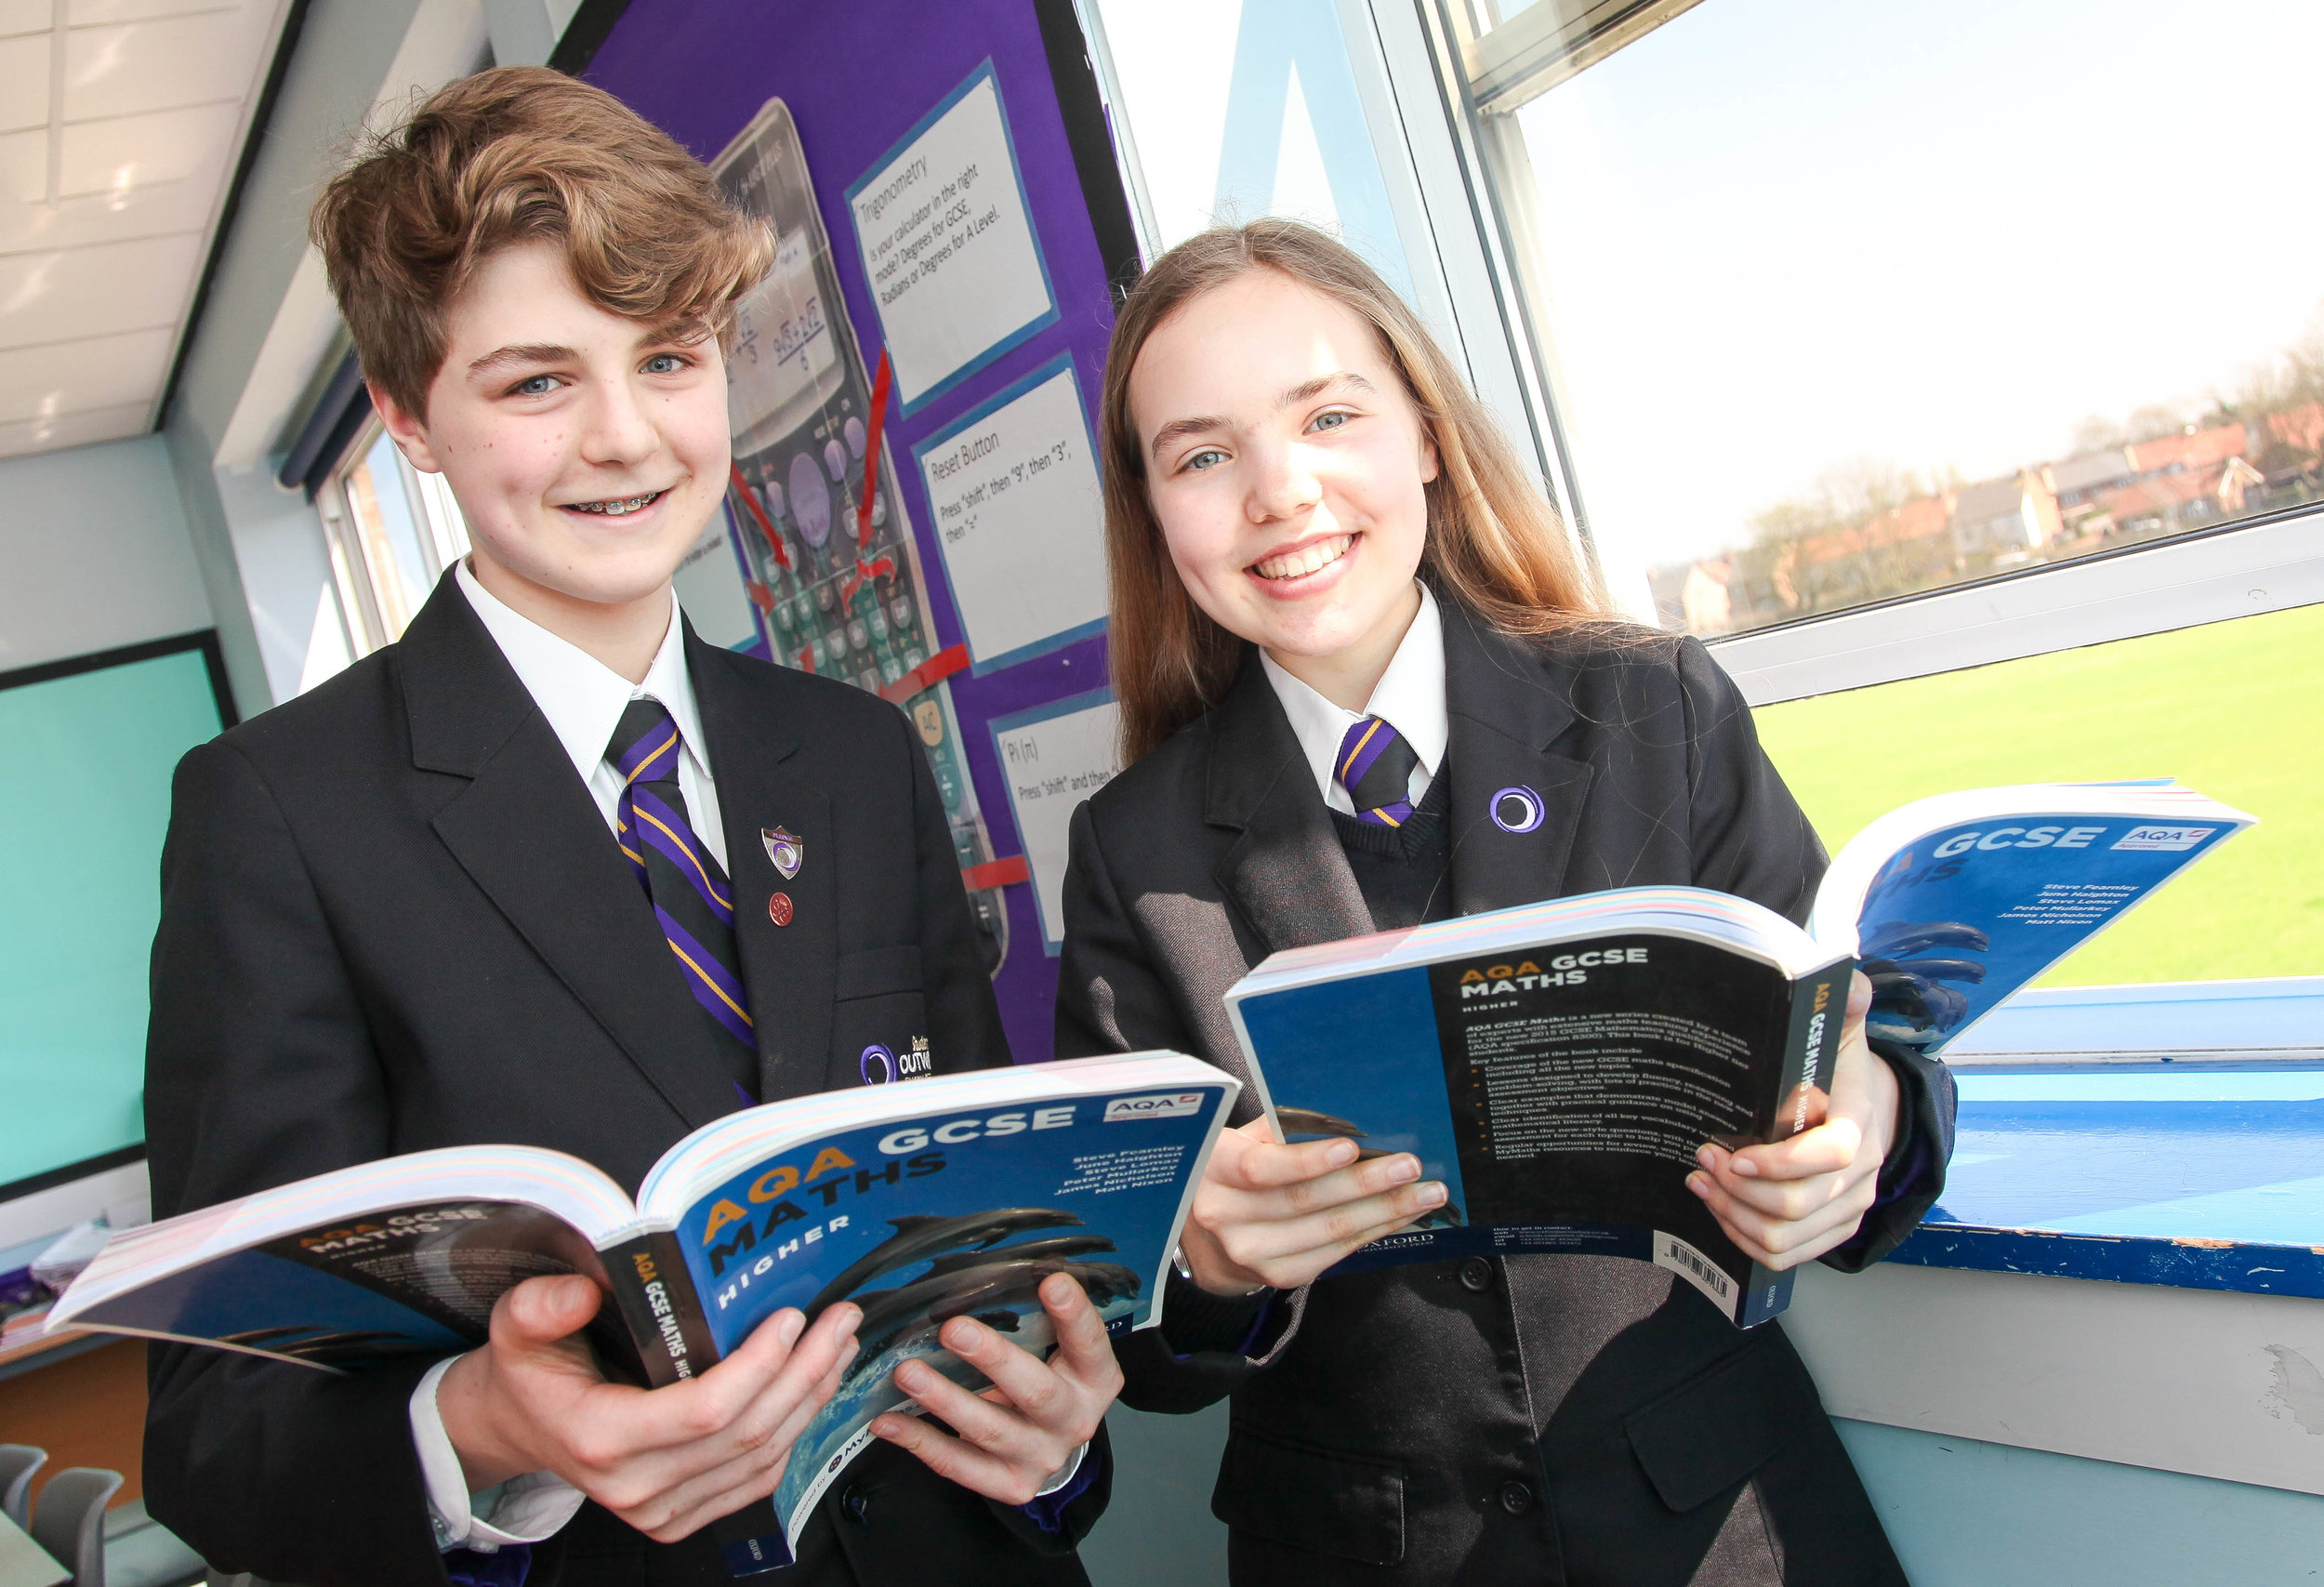 Curriculum Planning - From Year 7, each year is planned to stretch and challenge all students in their exploration of subjects. Departments design a rich access to the core knowledge, methods, terminology and approaches to thinking within their subject. From Year 7, students regularly revisit core concepts, recall key knowledge and repeatedly practice subject skills to develop a deeper understanding and mastery in preparation for their next steps and future study. Our subject pages illustrate the importance of each subject discipline and detail their 5 year subject curriculum plan showing what is taught, how it is assessed and what the benefits their subject study are.